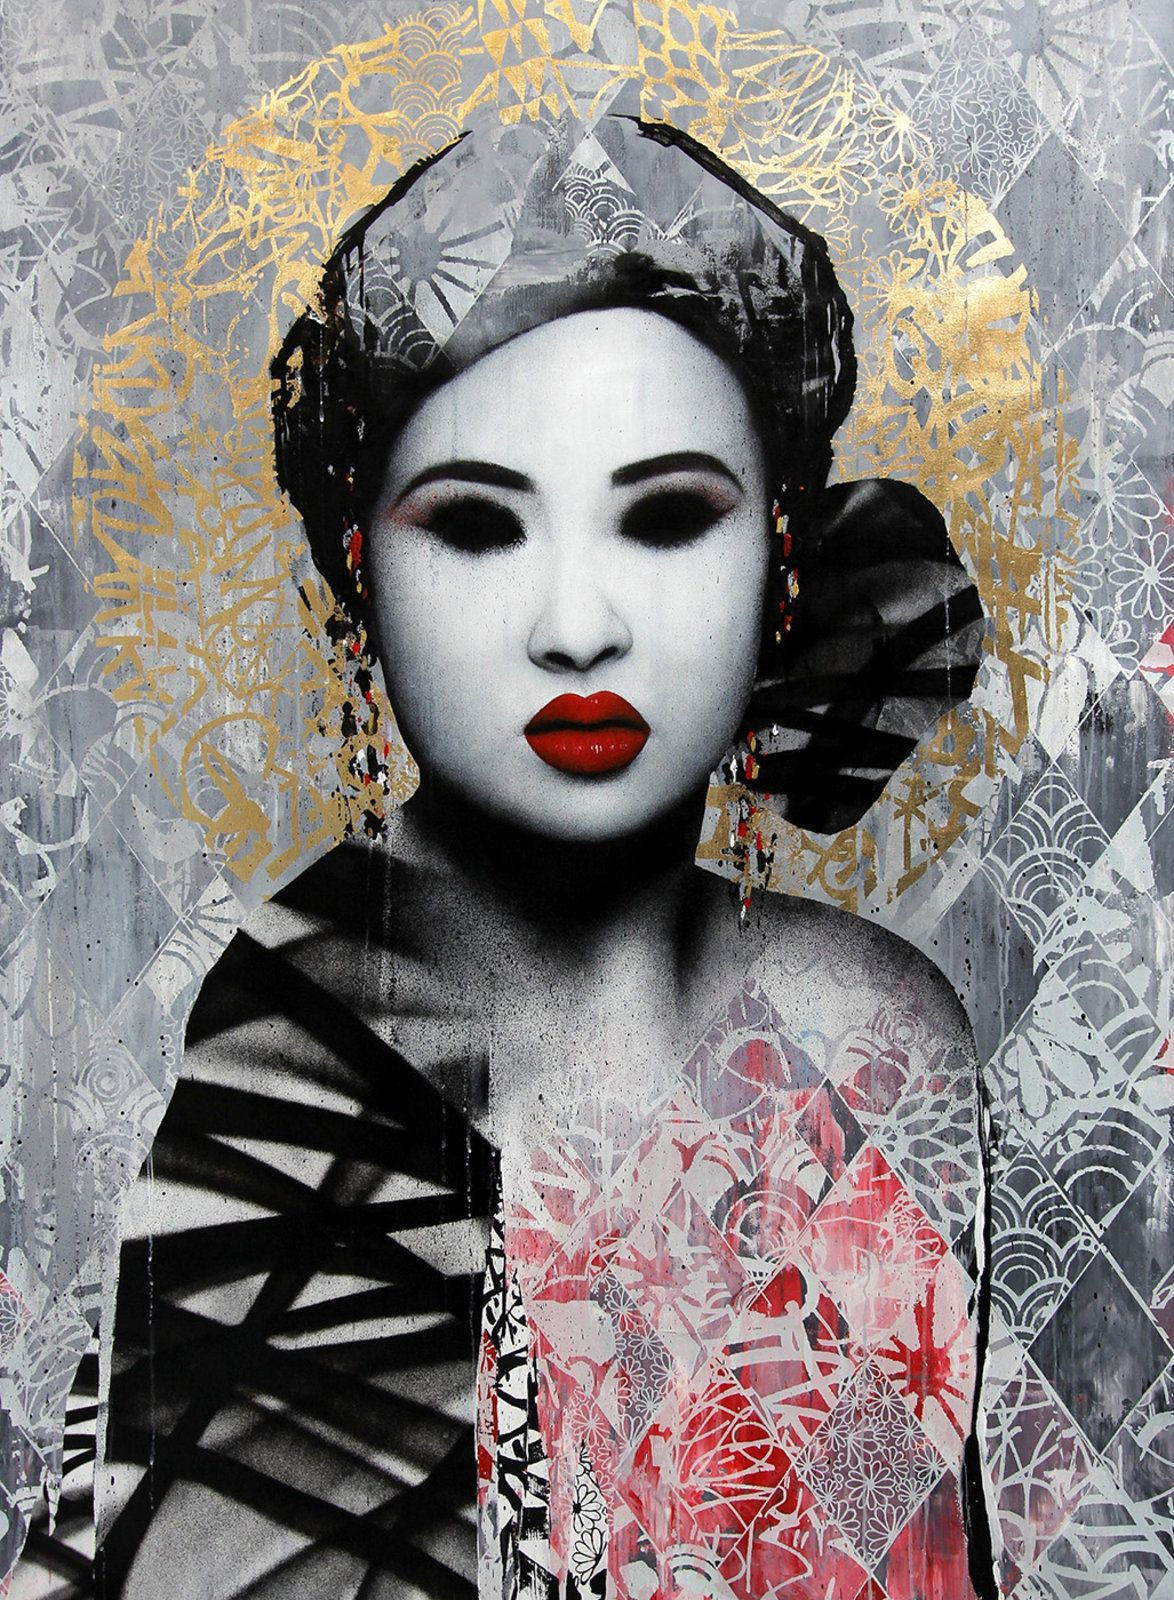 Some beautiful artwork by the street artist HUSH from his show at Corey Helford gallery in downtown Los Angeles.  This is a mixed media piece consisting of spray paint, acrylic, stencil and good old fashioned tags.